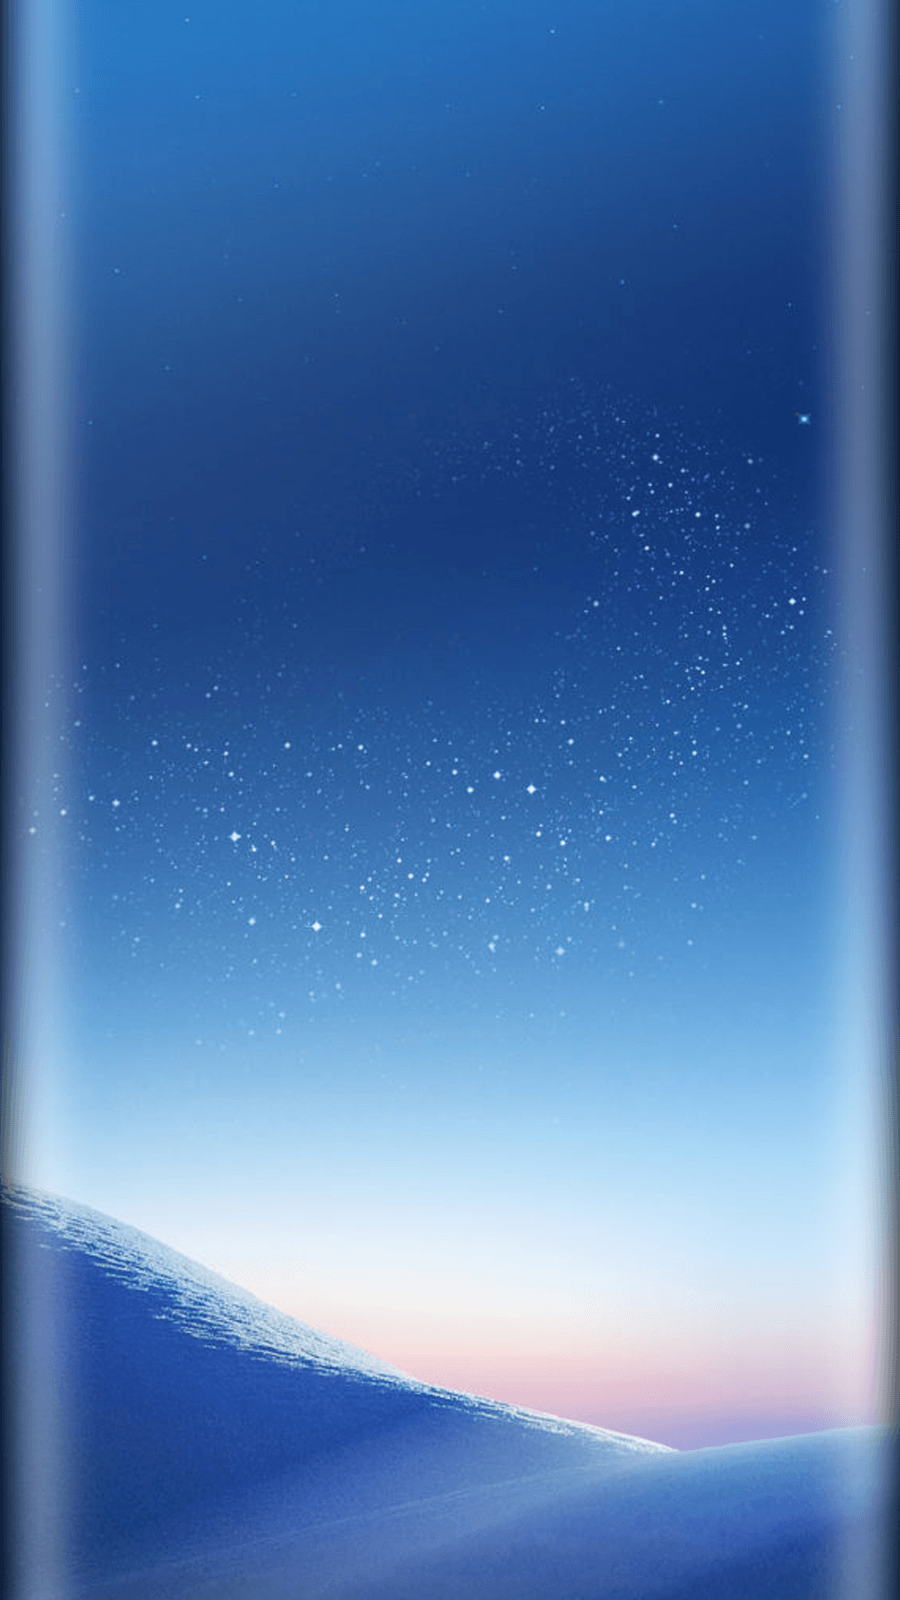 Samsung S8 Edge Wallpapers - Wallpaper Cave